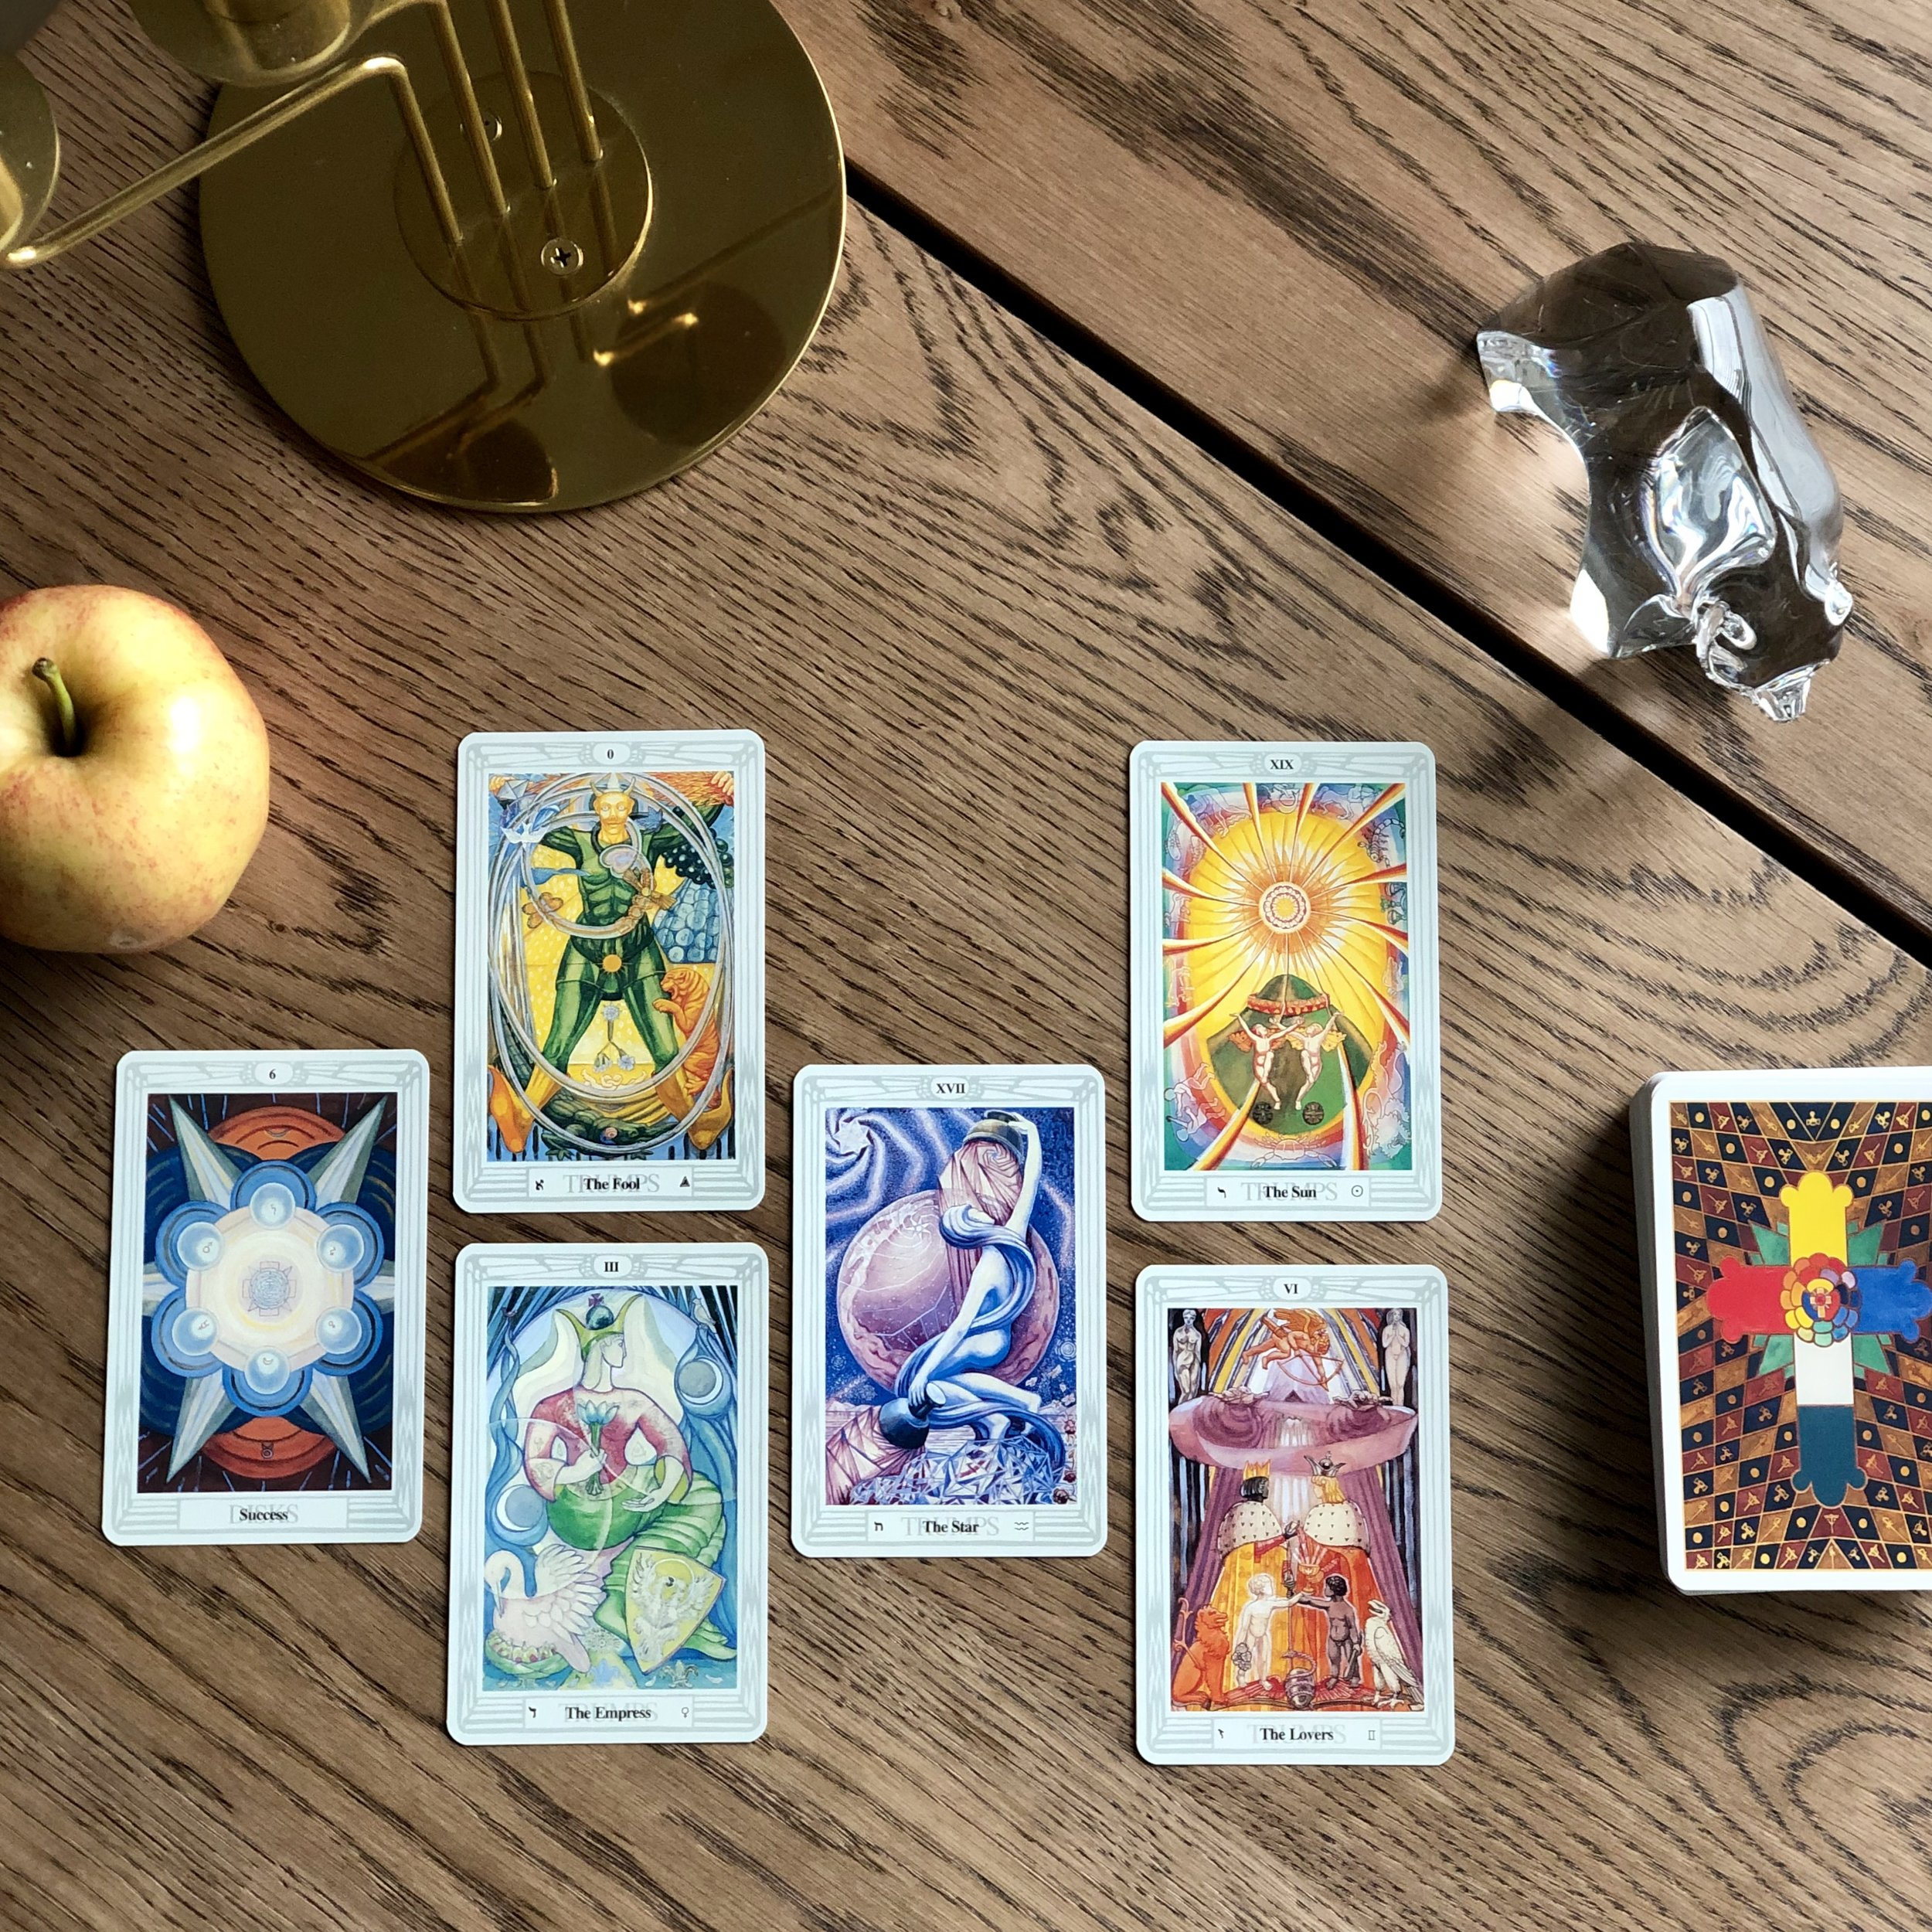 INTERVIEWING THE THOTH TAROT - Tell me about yourself. 6 of Disks.What are your strengths? The Fool.And your limitations? The Empress.What are you here to help me learn? The Star.How can I work with you most effectively? The Sun.Where is our partnership headed? The Lovers.